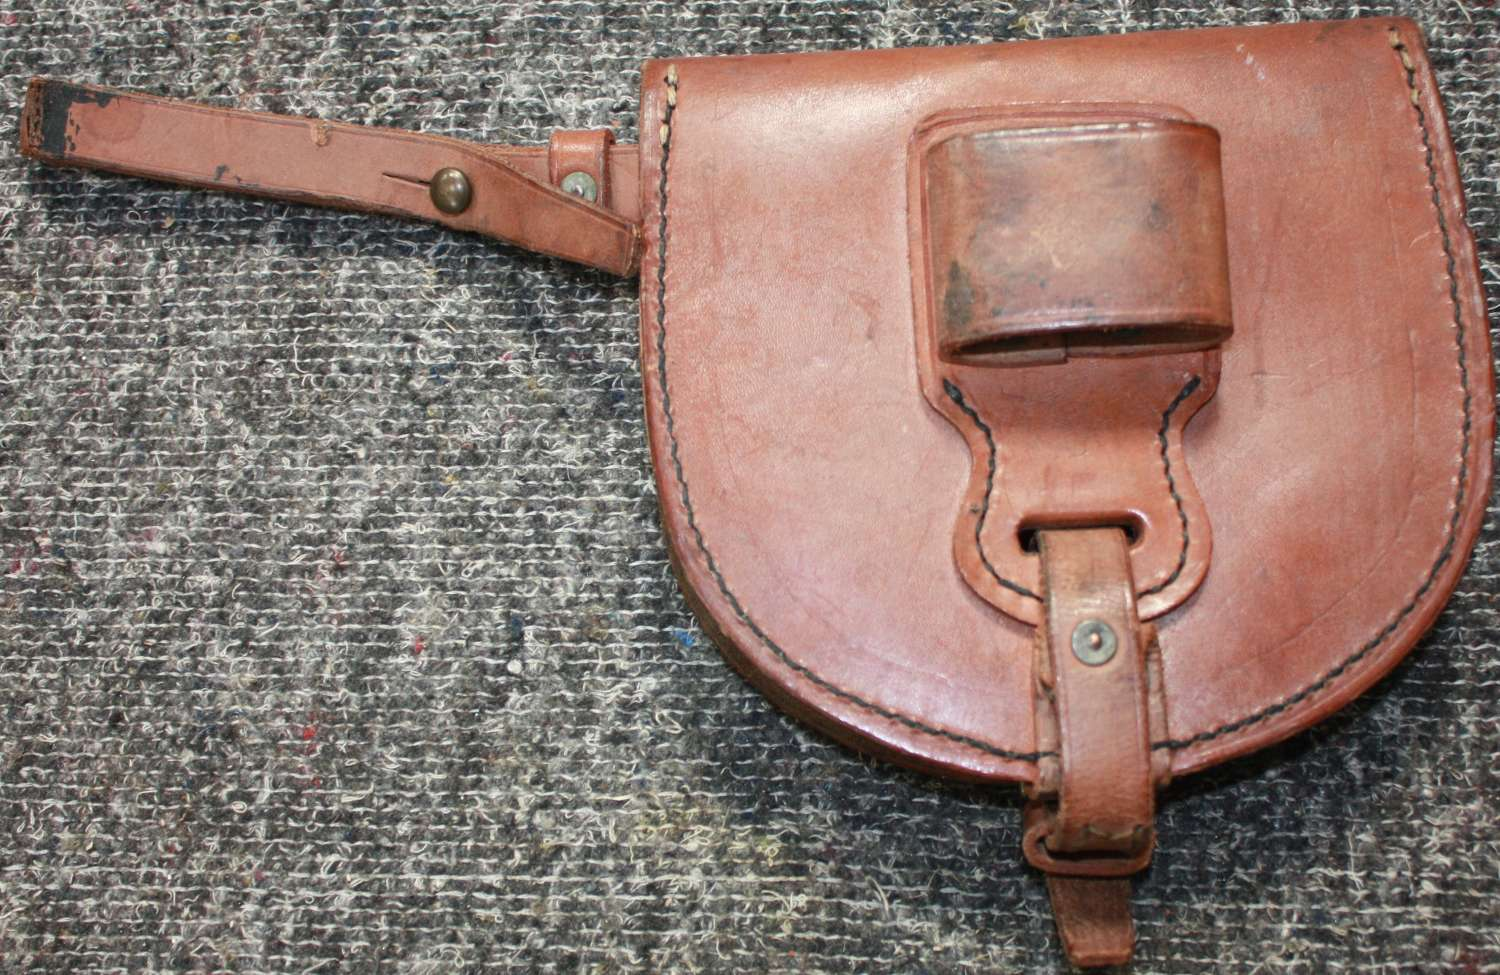 A 1940 DATED CAVALRY HORSE SHOE POUCH WITH SHOE